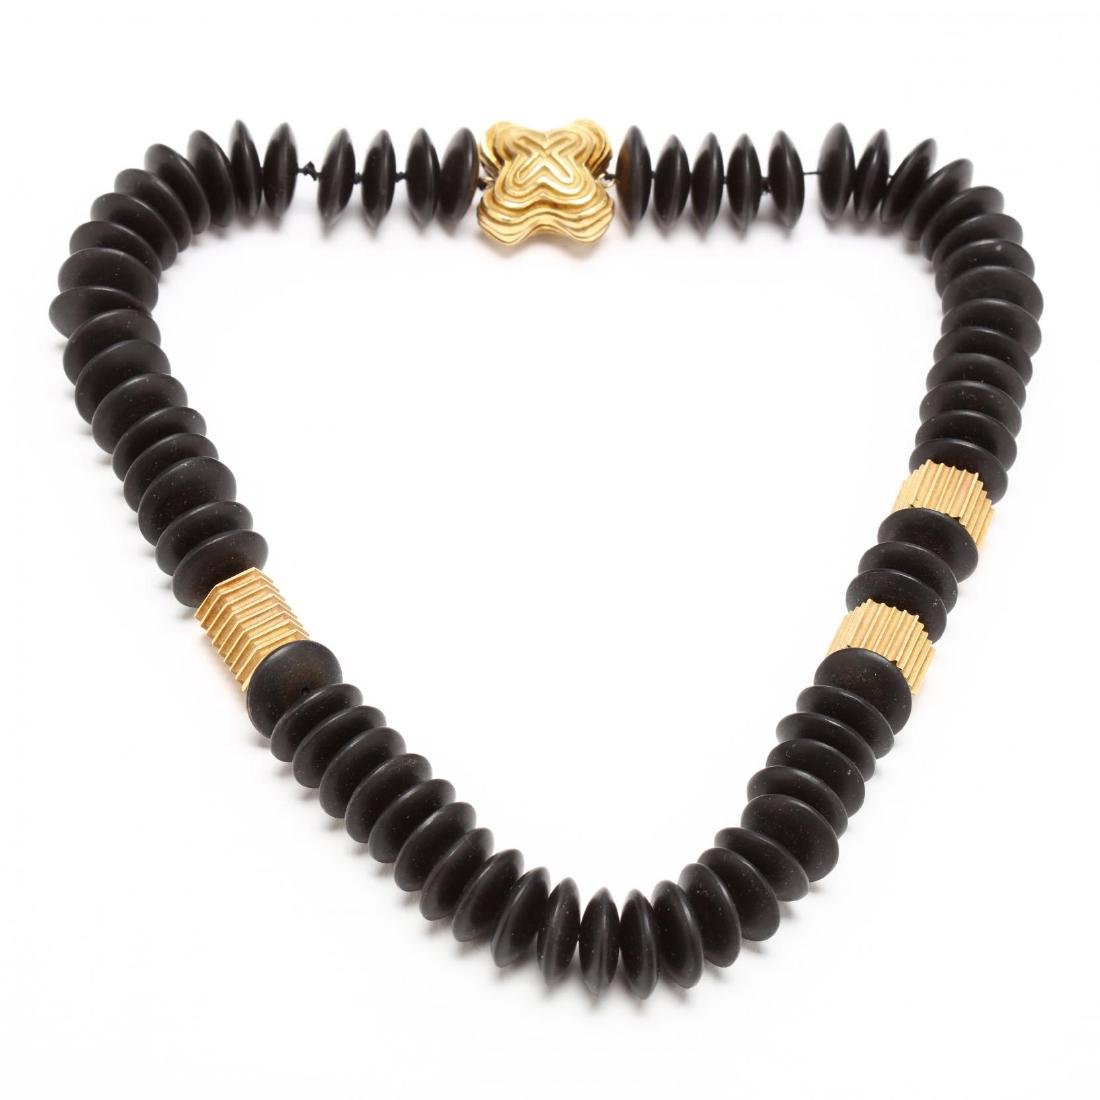 18KT Gold and Ebony Necklace, Christopher Walling